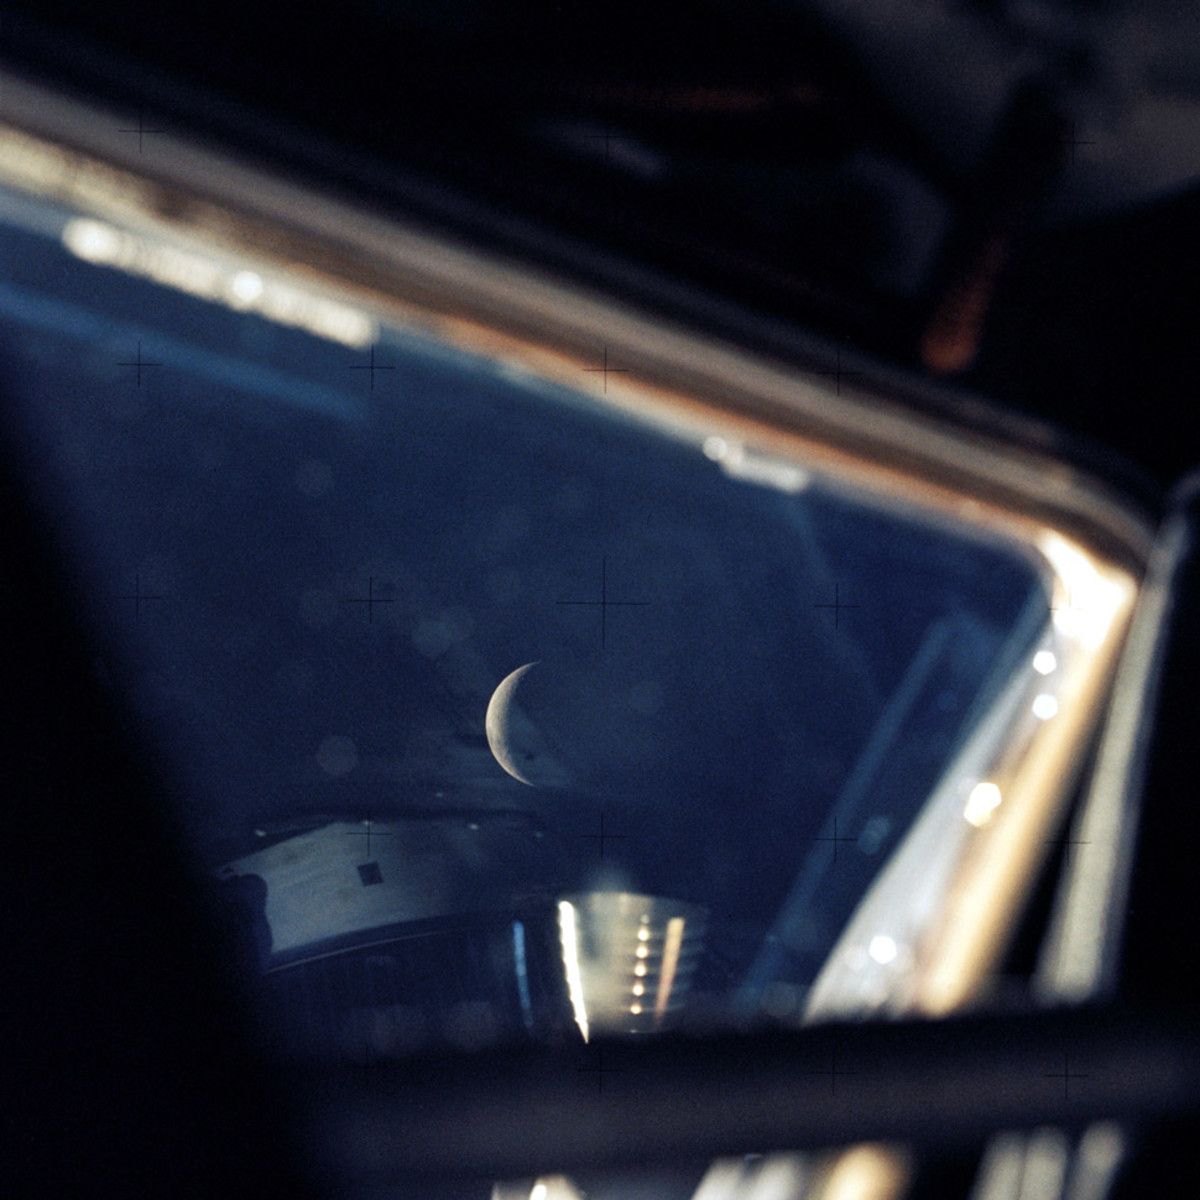 View-of-the-Moon-in-the-LM-Apollo-13-Gear-Patrol